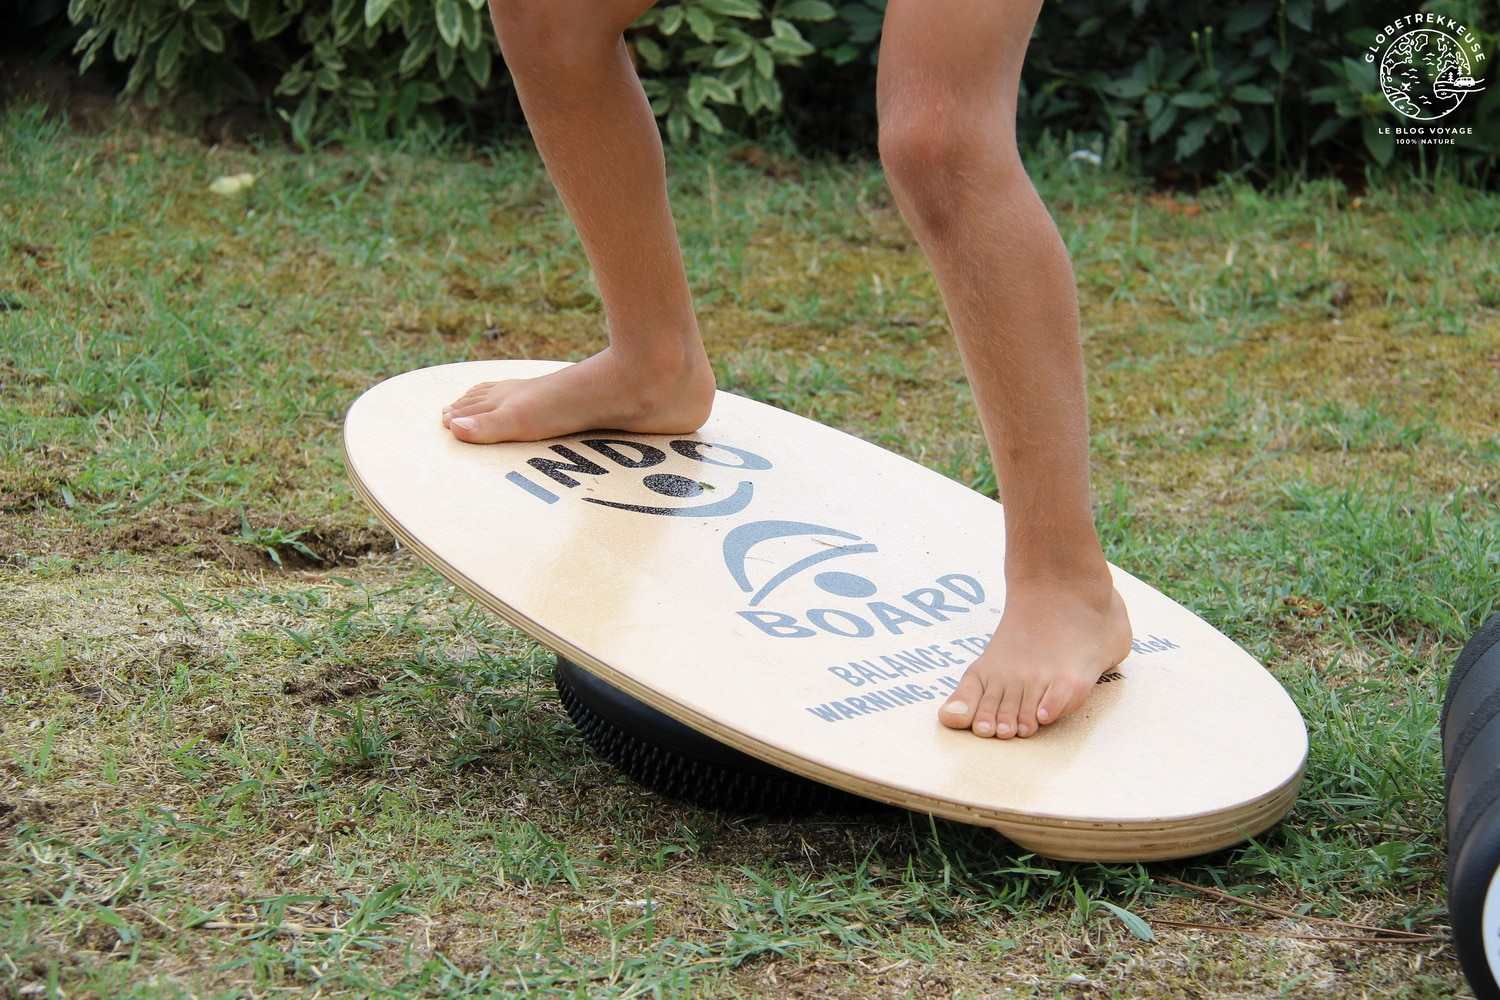 indoboard planche equilibre coussin